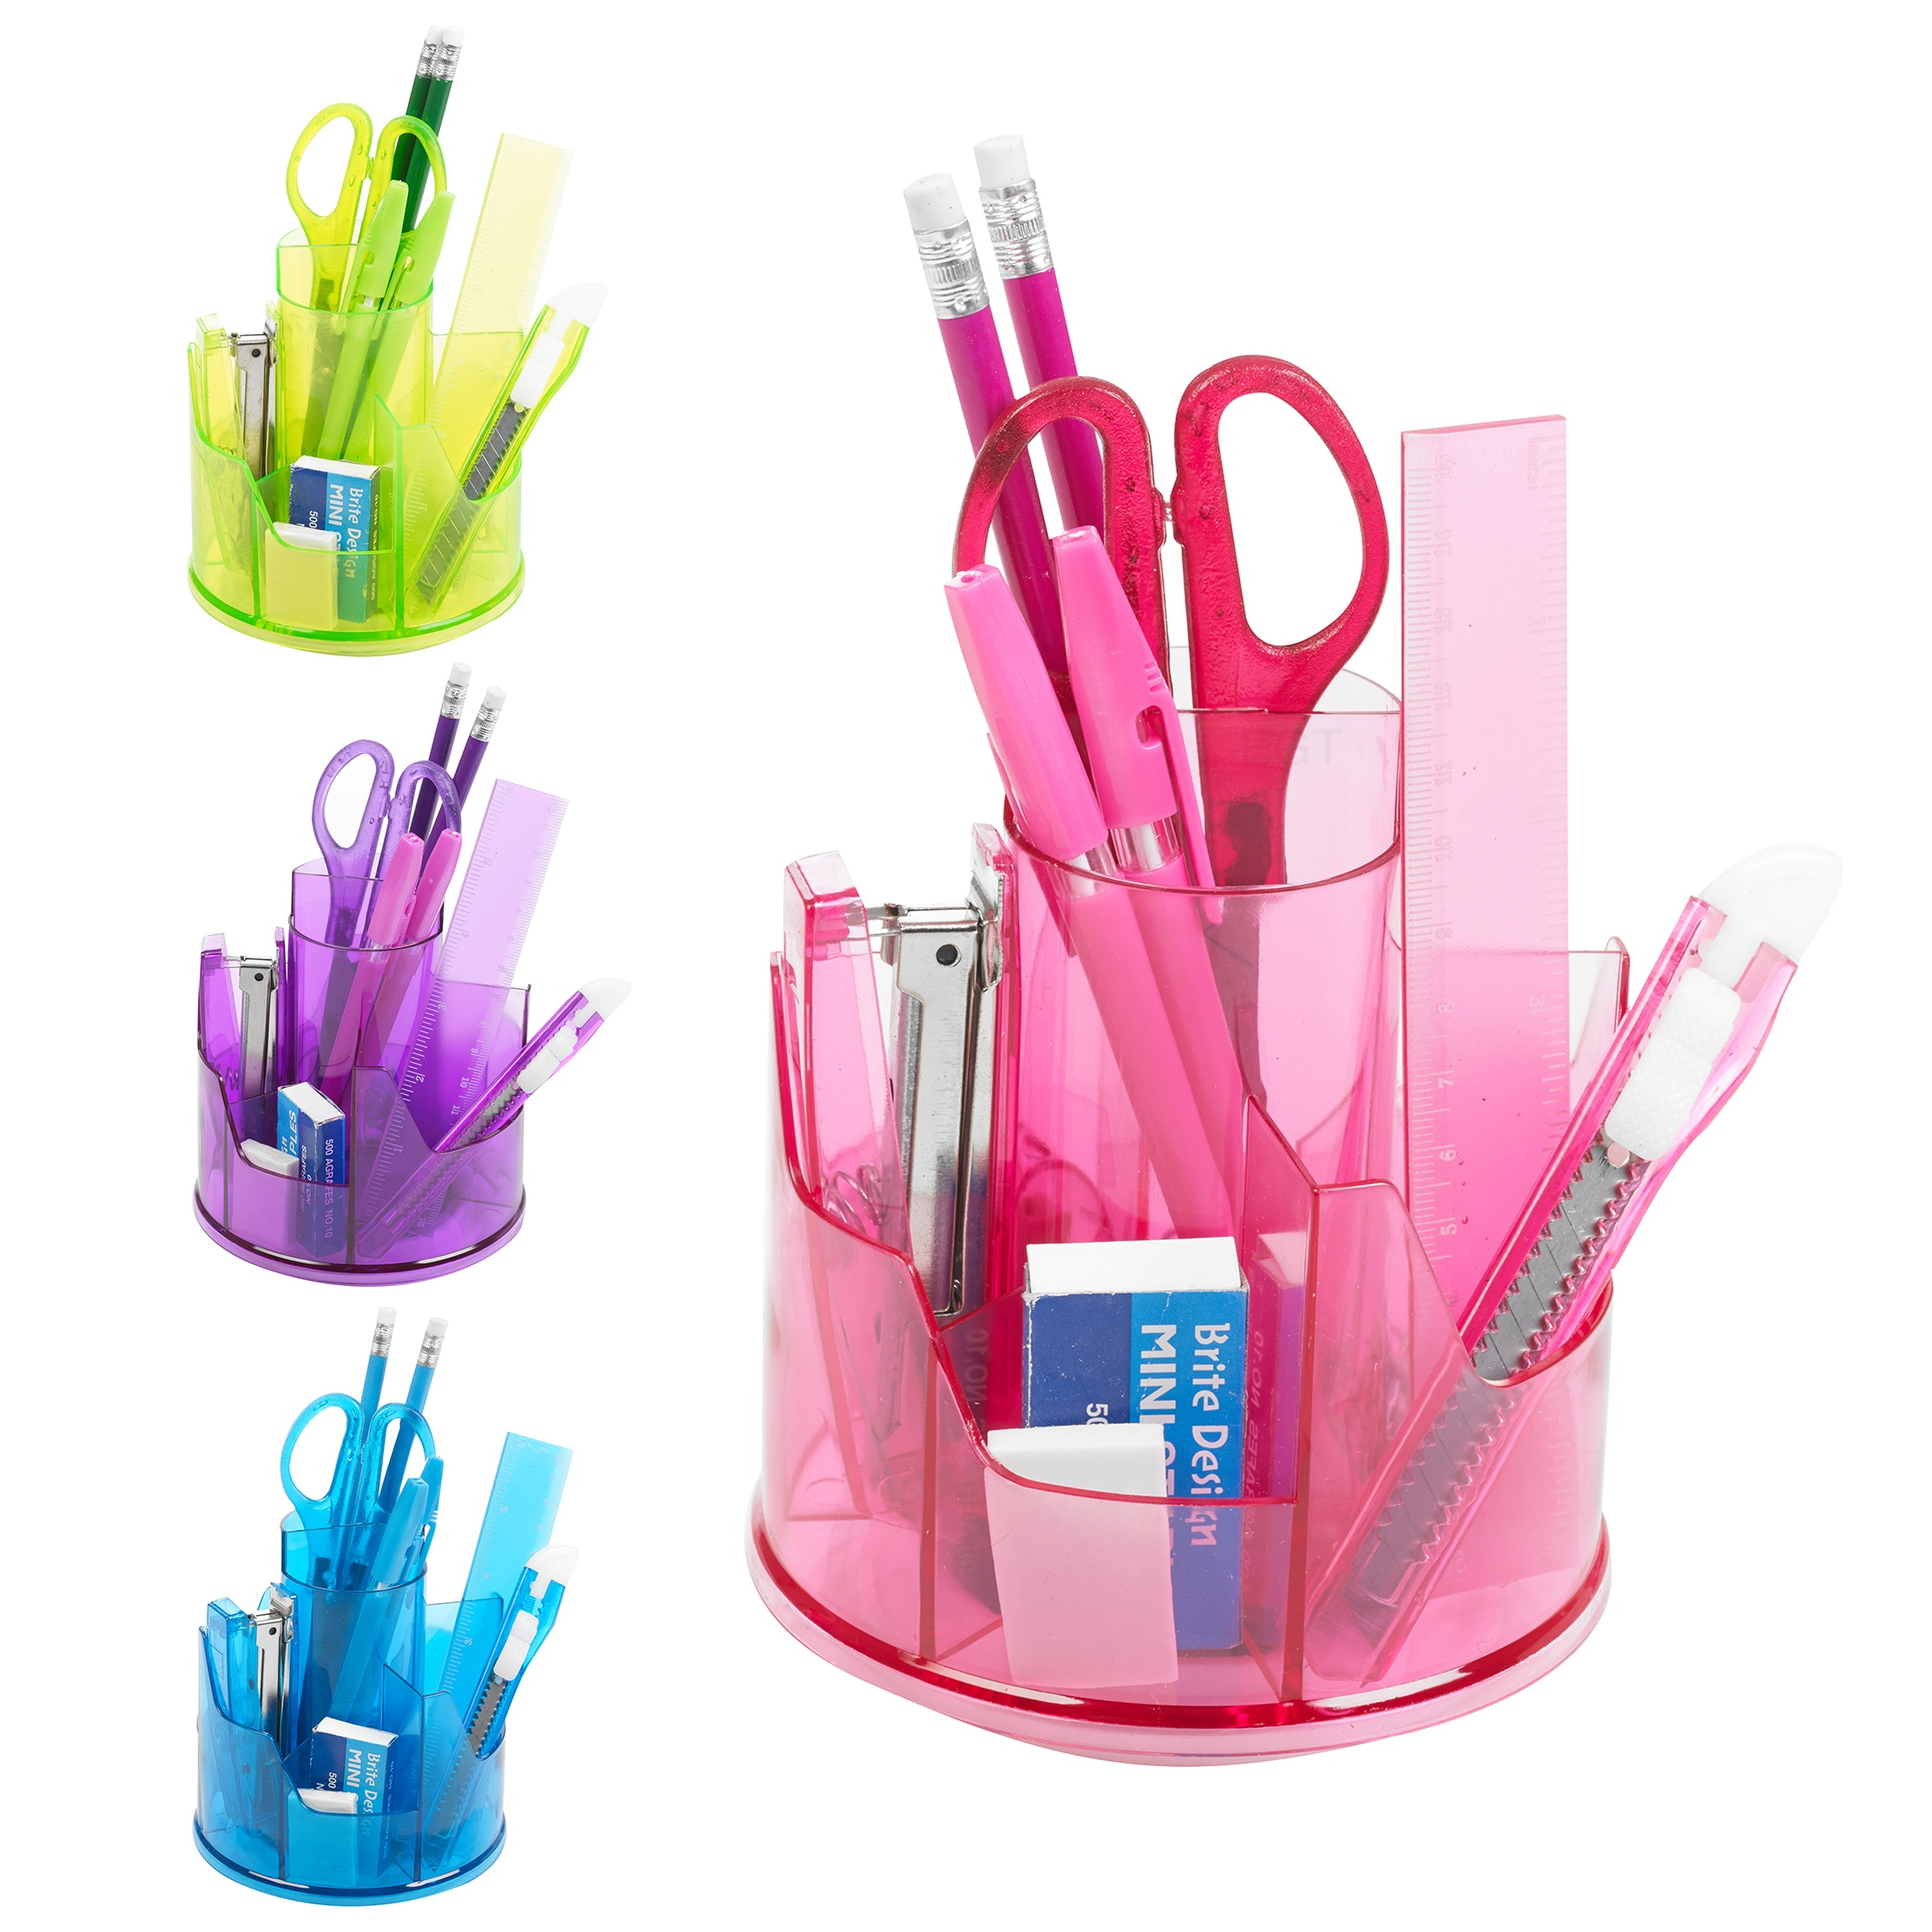 13pc Office Stationery Organiser Set Rotating Desk Tidy Pen Holder Accessory Pot Ebay